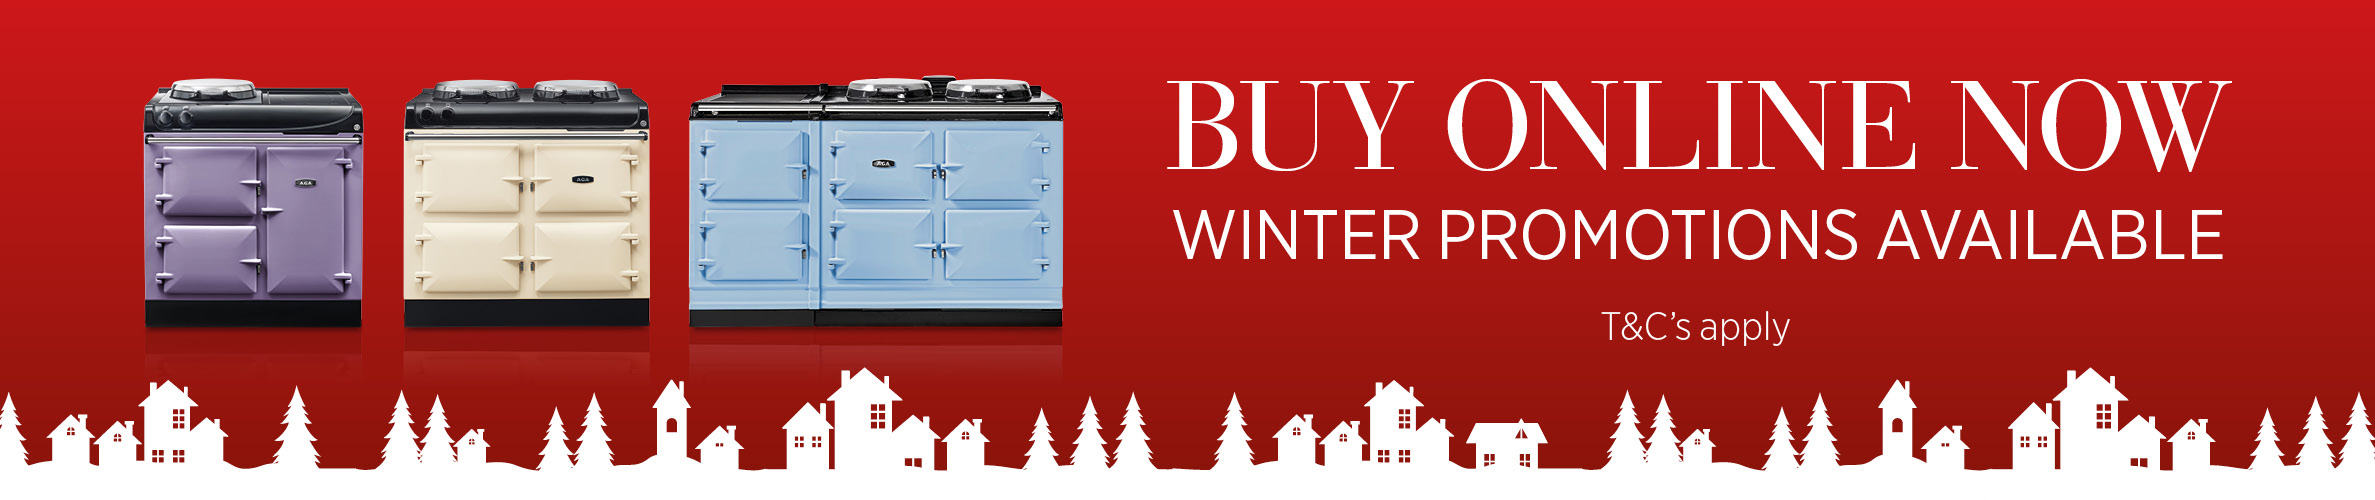 AGA Winter Promotions